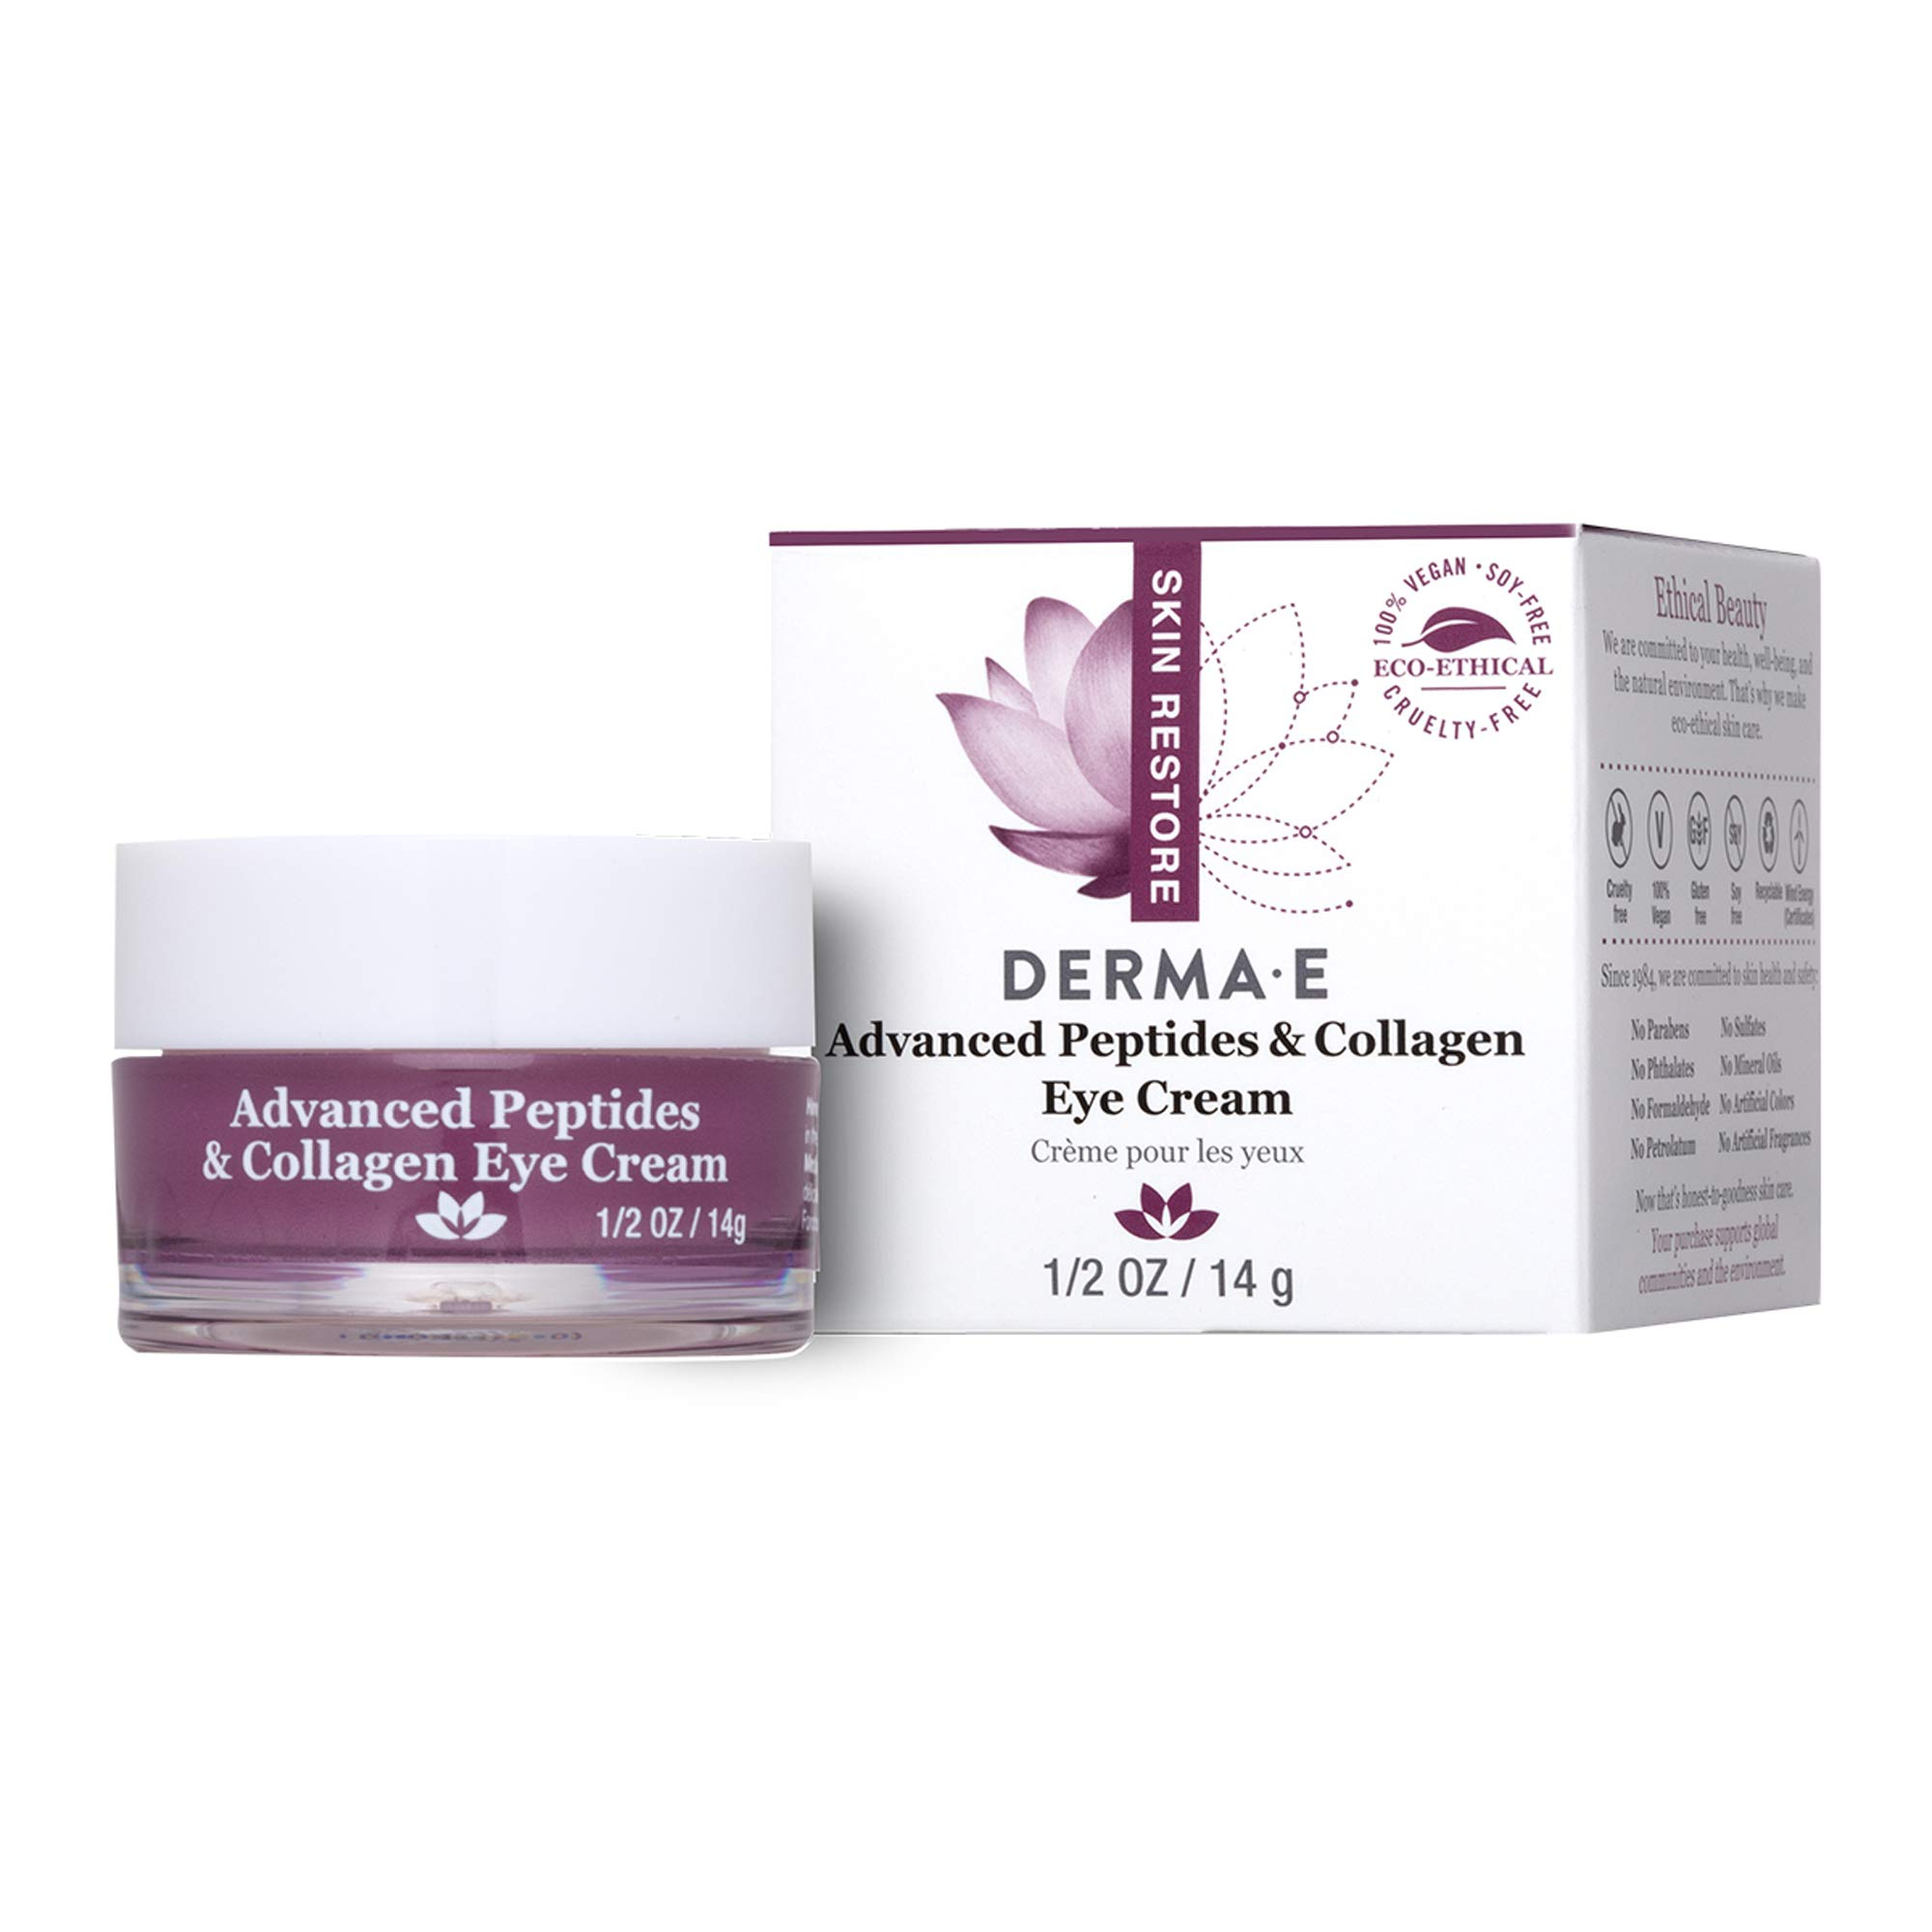 DERMA-E advanced Peptide & Collagen Eye Cream, White, 0.5 Ounce